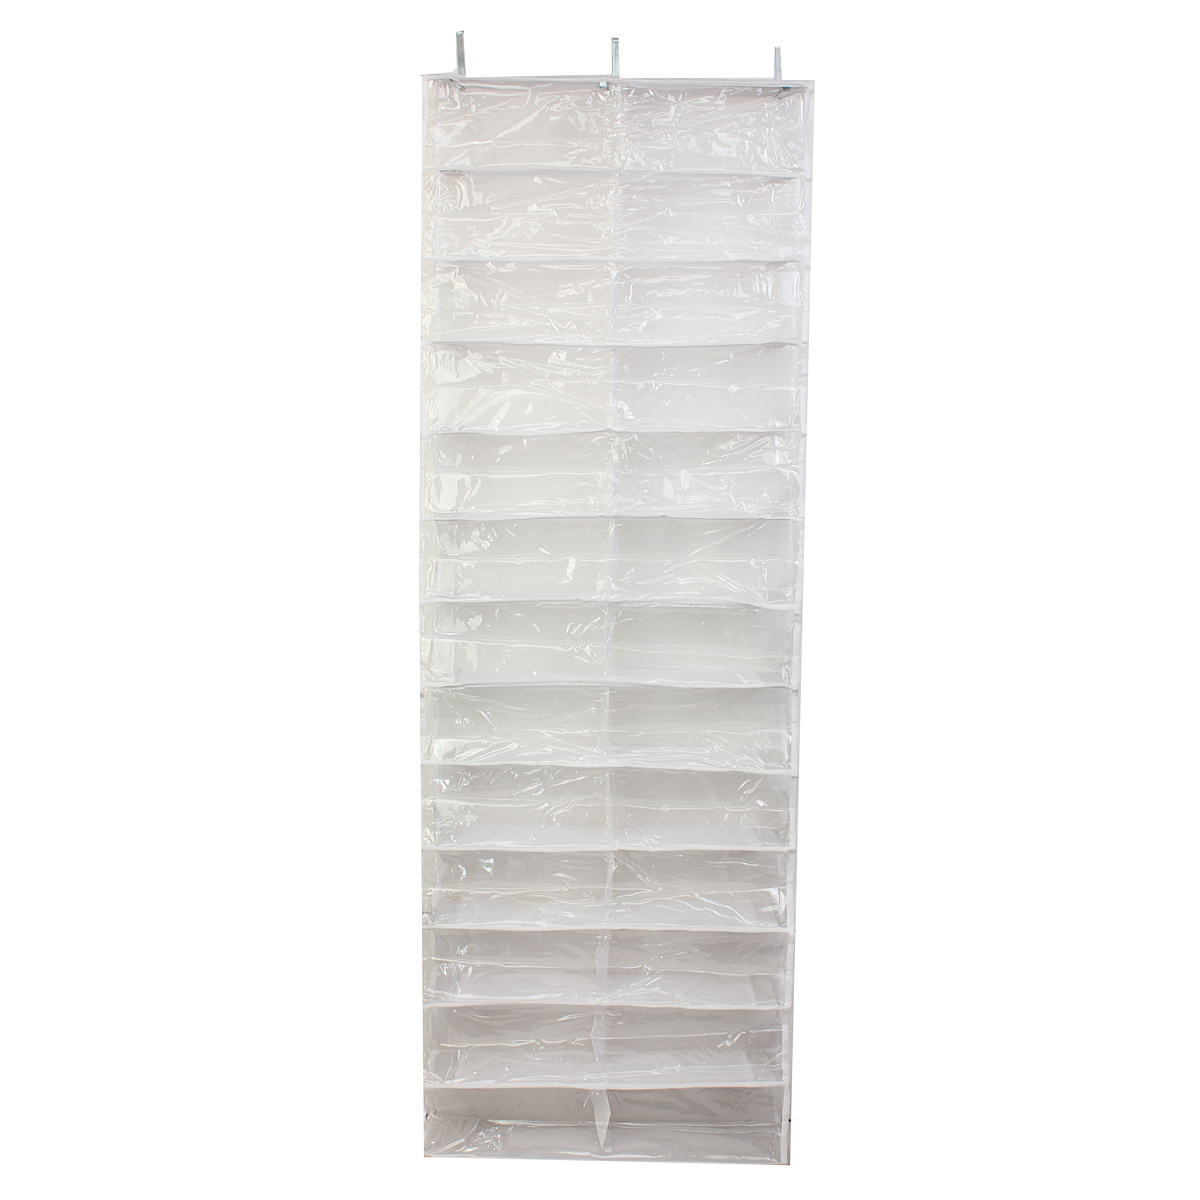 26 Pairs Over Door Hanging Stand Shoe Rack Shelf Storage Organiser Pocket Holder Creamy white футболка puma arsenal training jersey 751711031